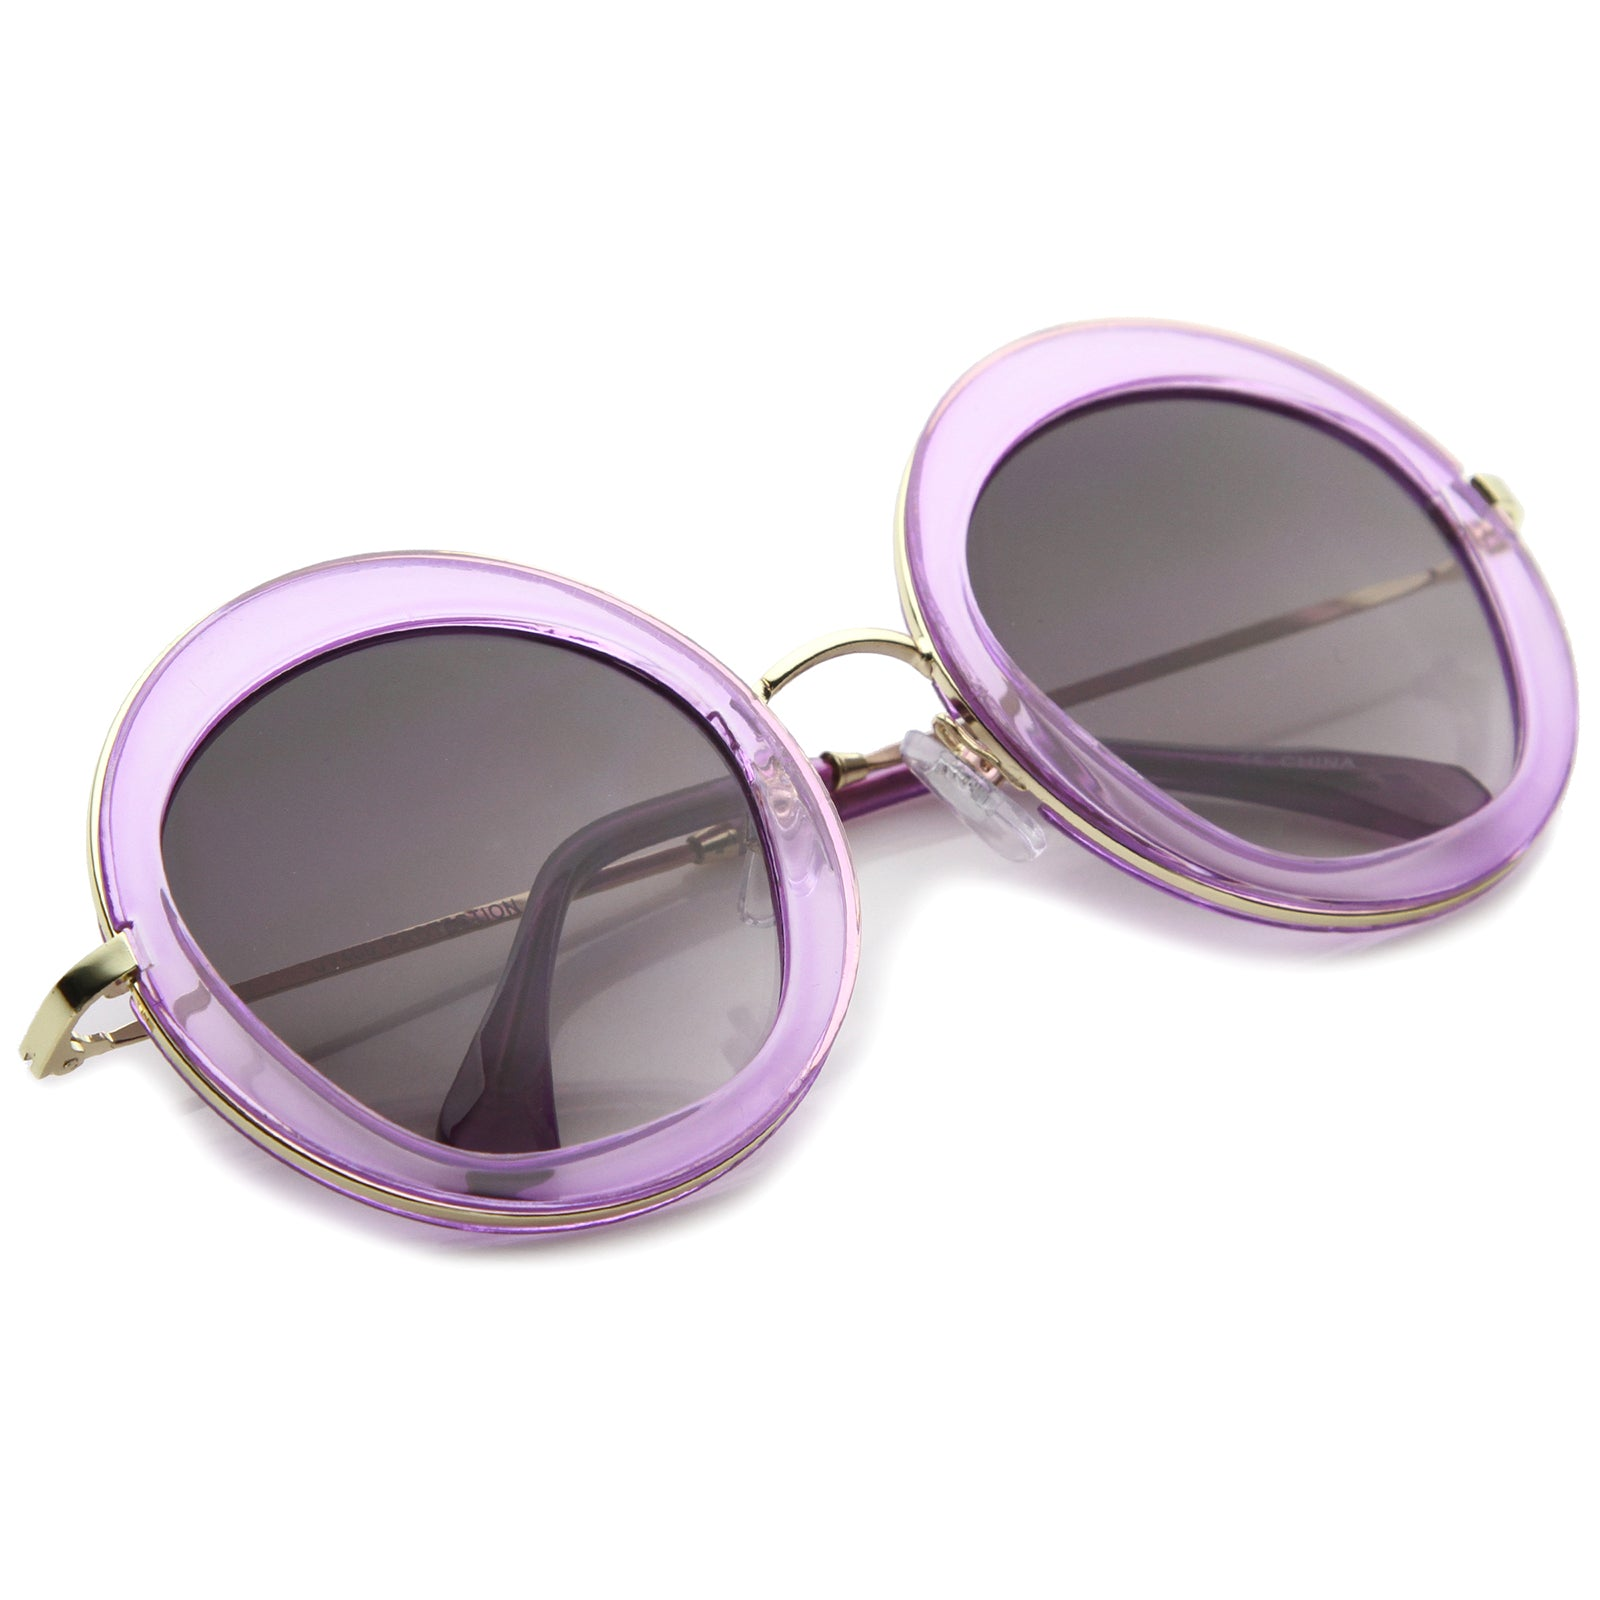 Womens Round Sunglasses With UV400 Protected Gradient Lens - sunglass.la - 20